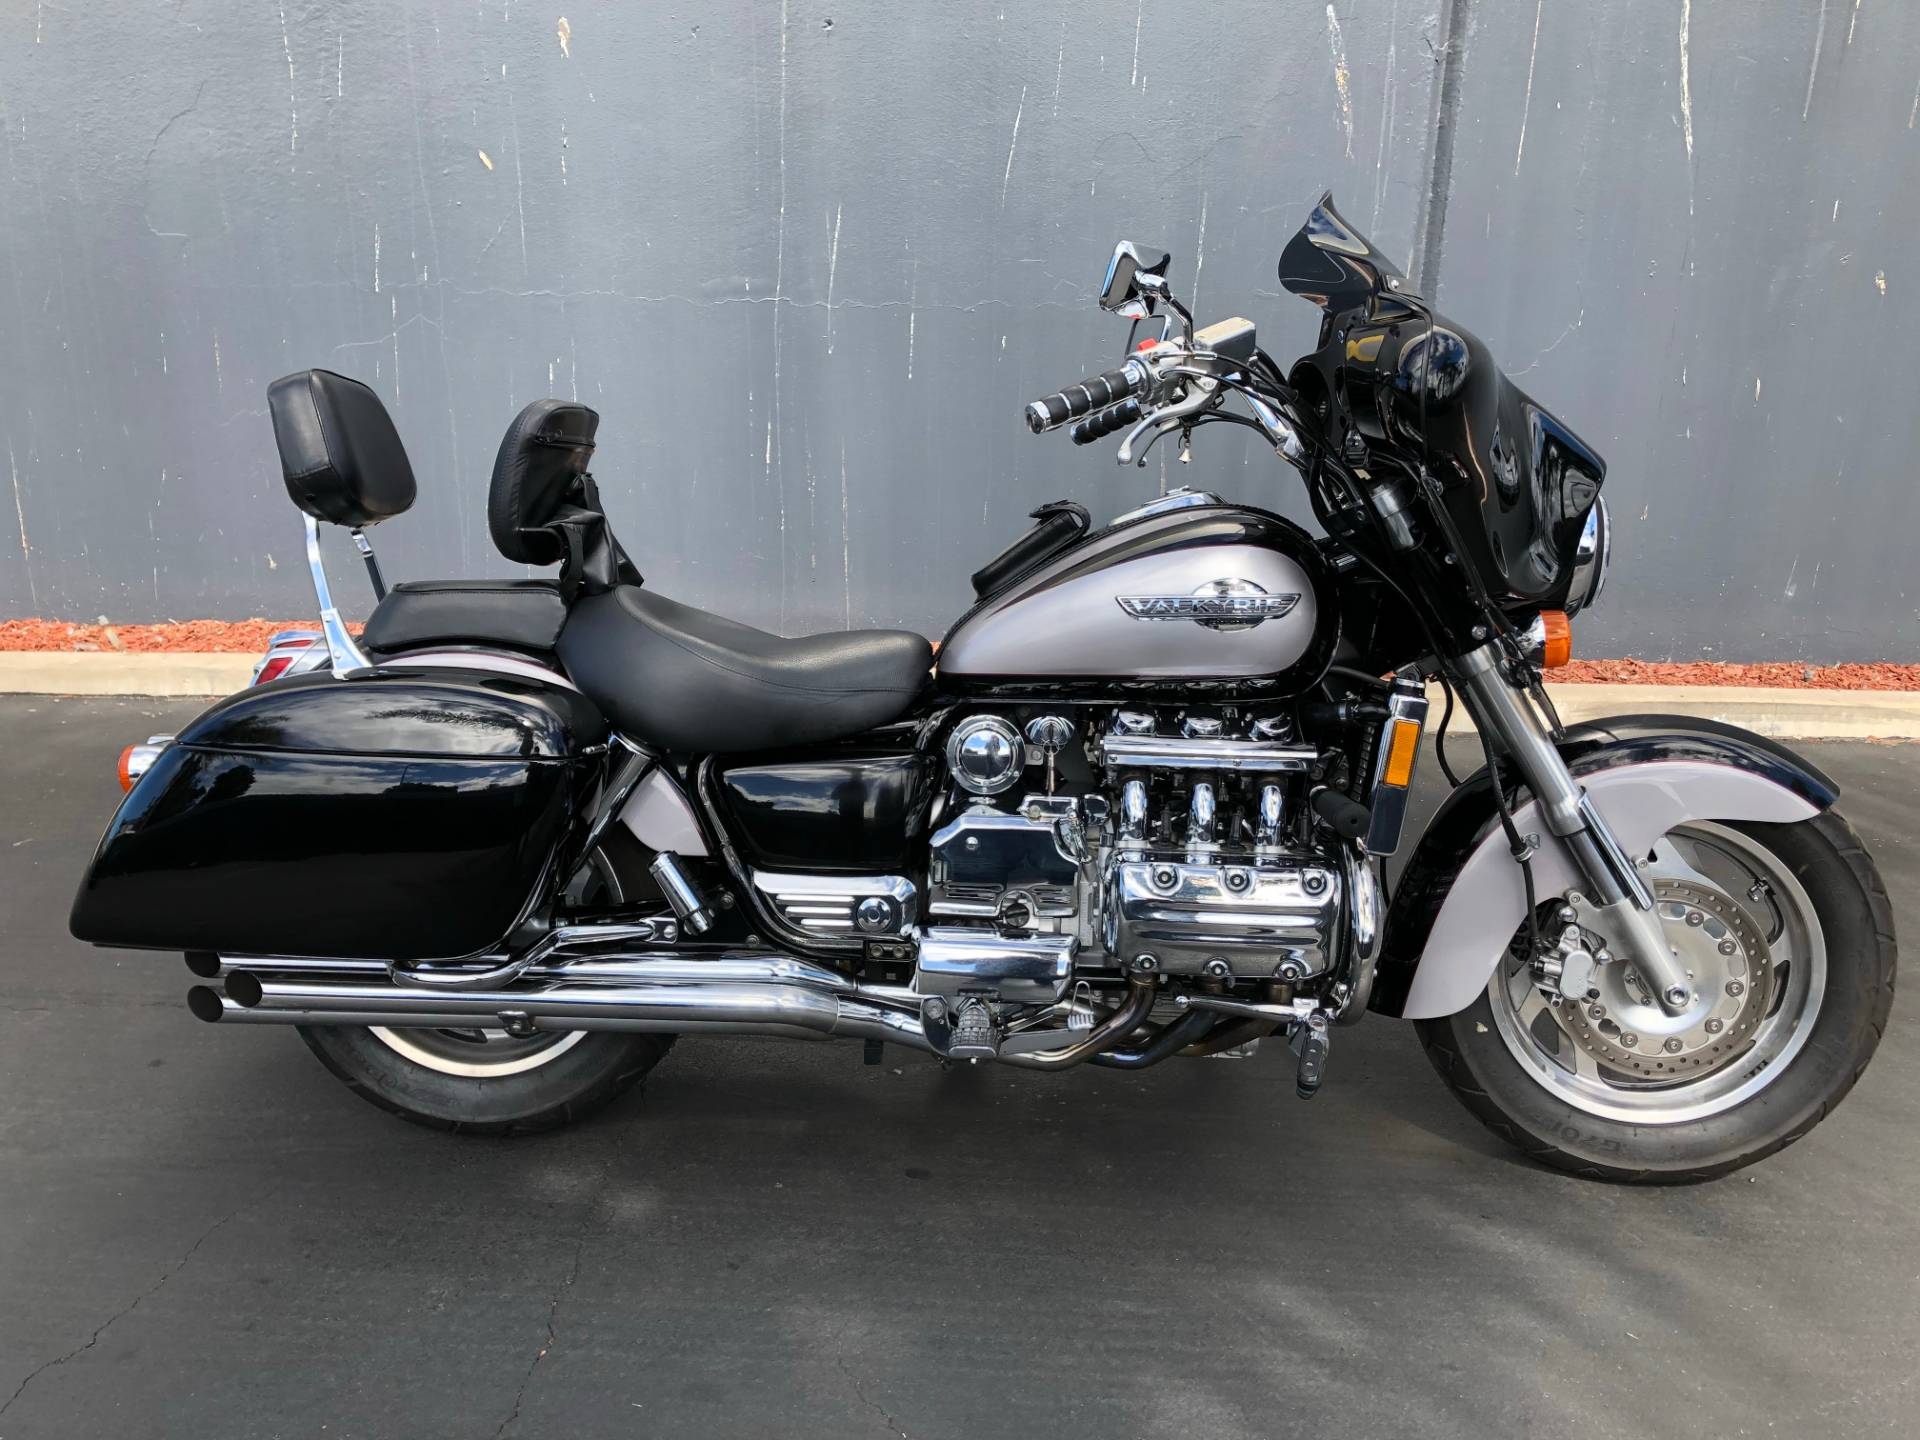 1999 Honda Valkyrie Interstate in Chula Vista, California - Photo 1